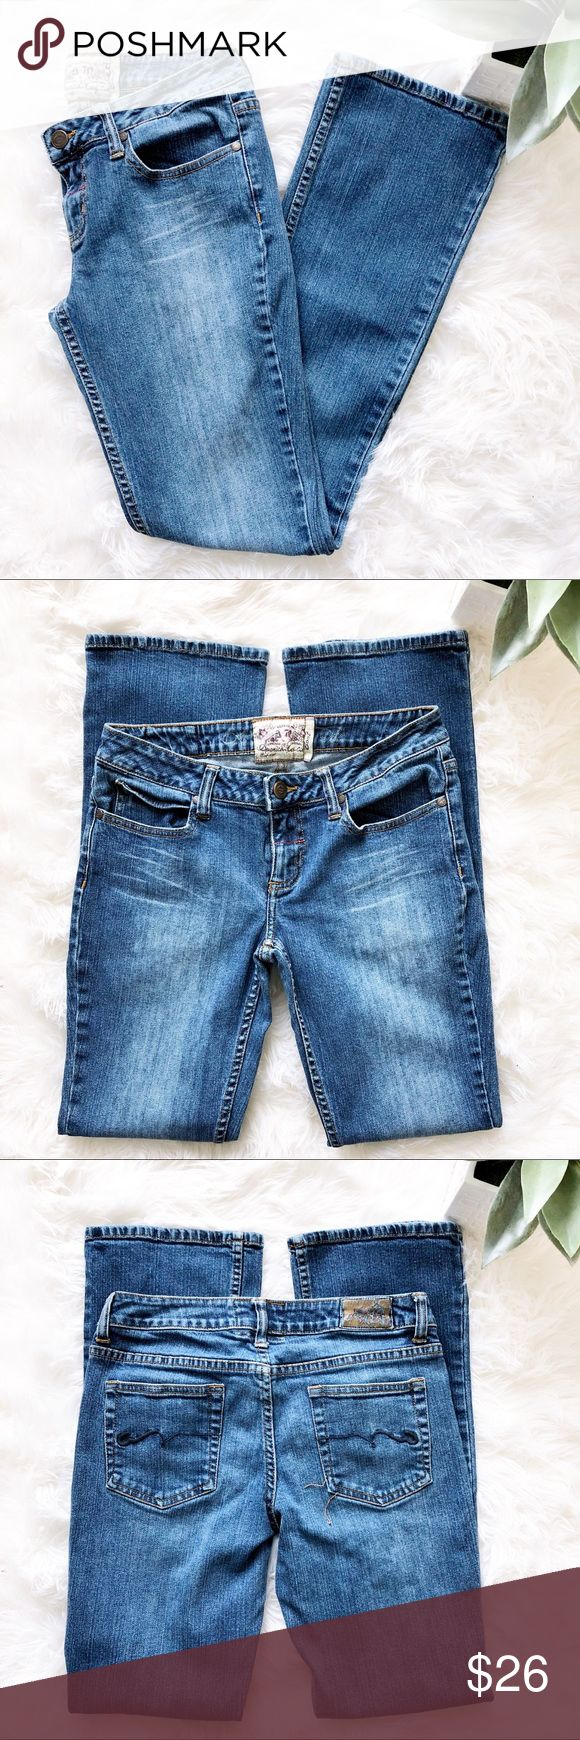 "American Rag Medium Wash Bootcut Jeans Slim on the top & wider below the knee, the Bootcut look is a look that always flatters! Medium wash jeans in a Bootcut style from American Rag, gently worn, great condition! Features 1 button closure with zip fly, 5 pocket styling, & medium wash with light fading & whiskering detail. 99% cotton, 1% spandex. Waist ~30"", inseam ~30.5"", front rise ~7.5"", back rise ~12"", leg opening ~16"".  Size 5R. *Stitching on back right pocket is loose. Does not affect…"